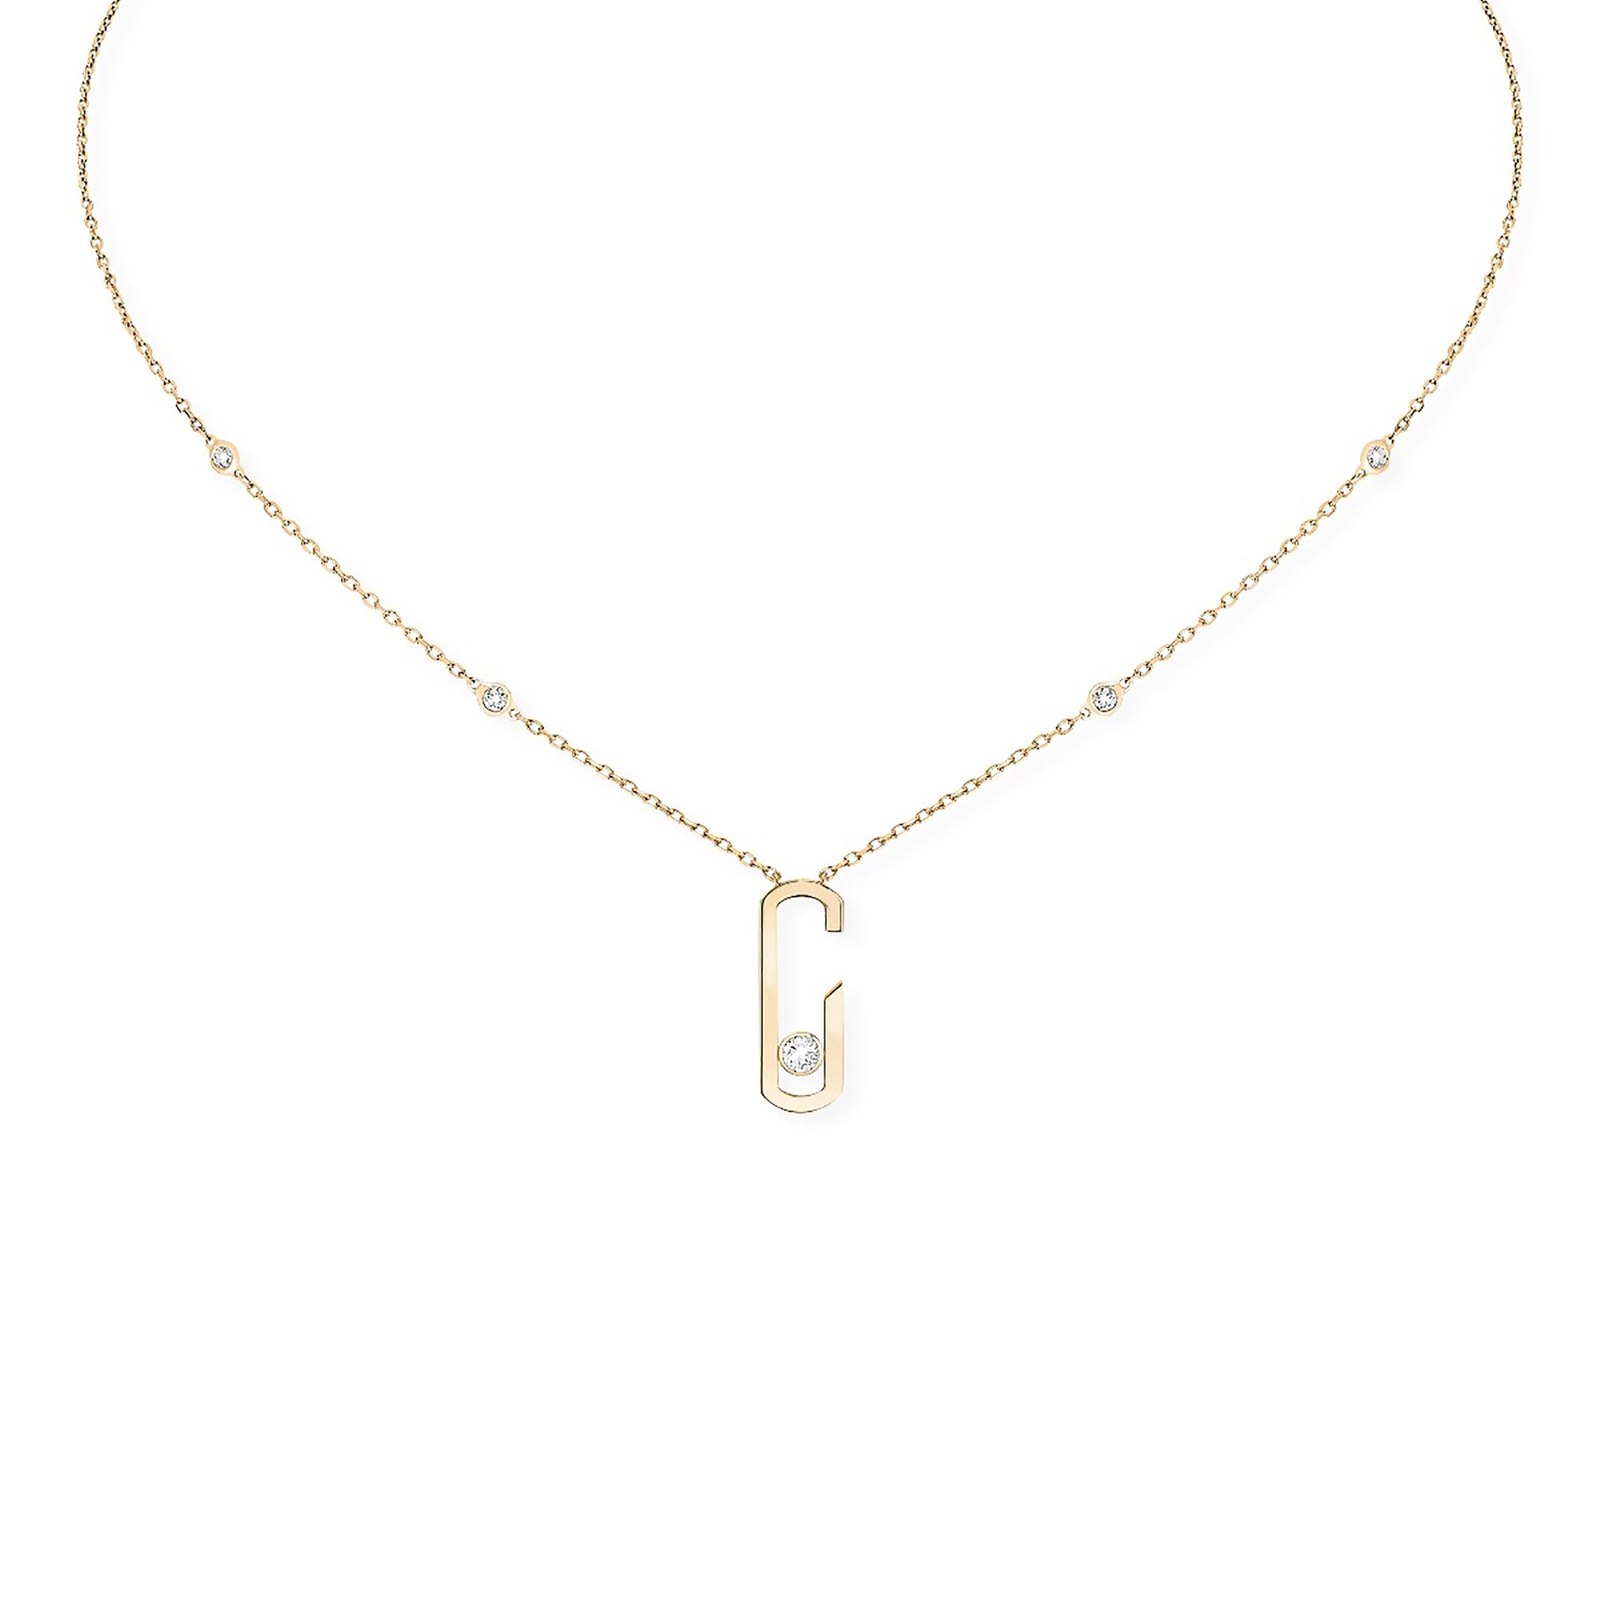 necklace monogram plain maltin m by collection kismet gold milka